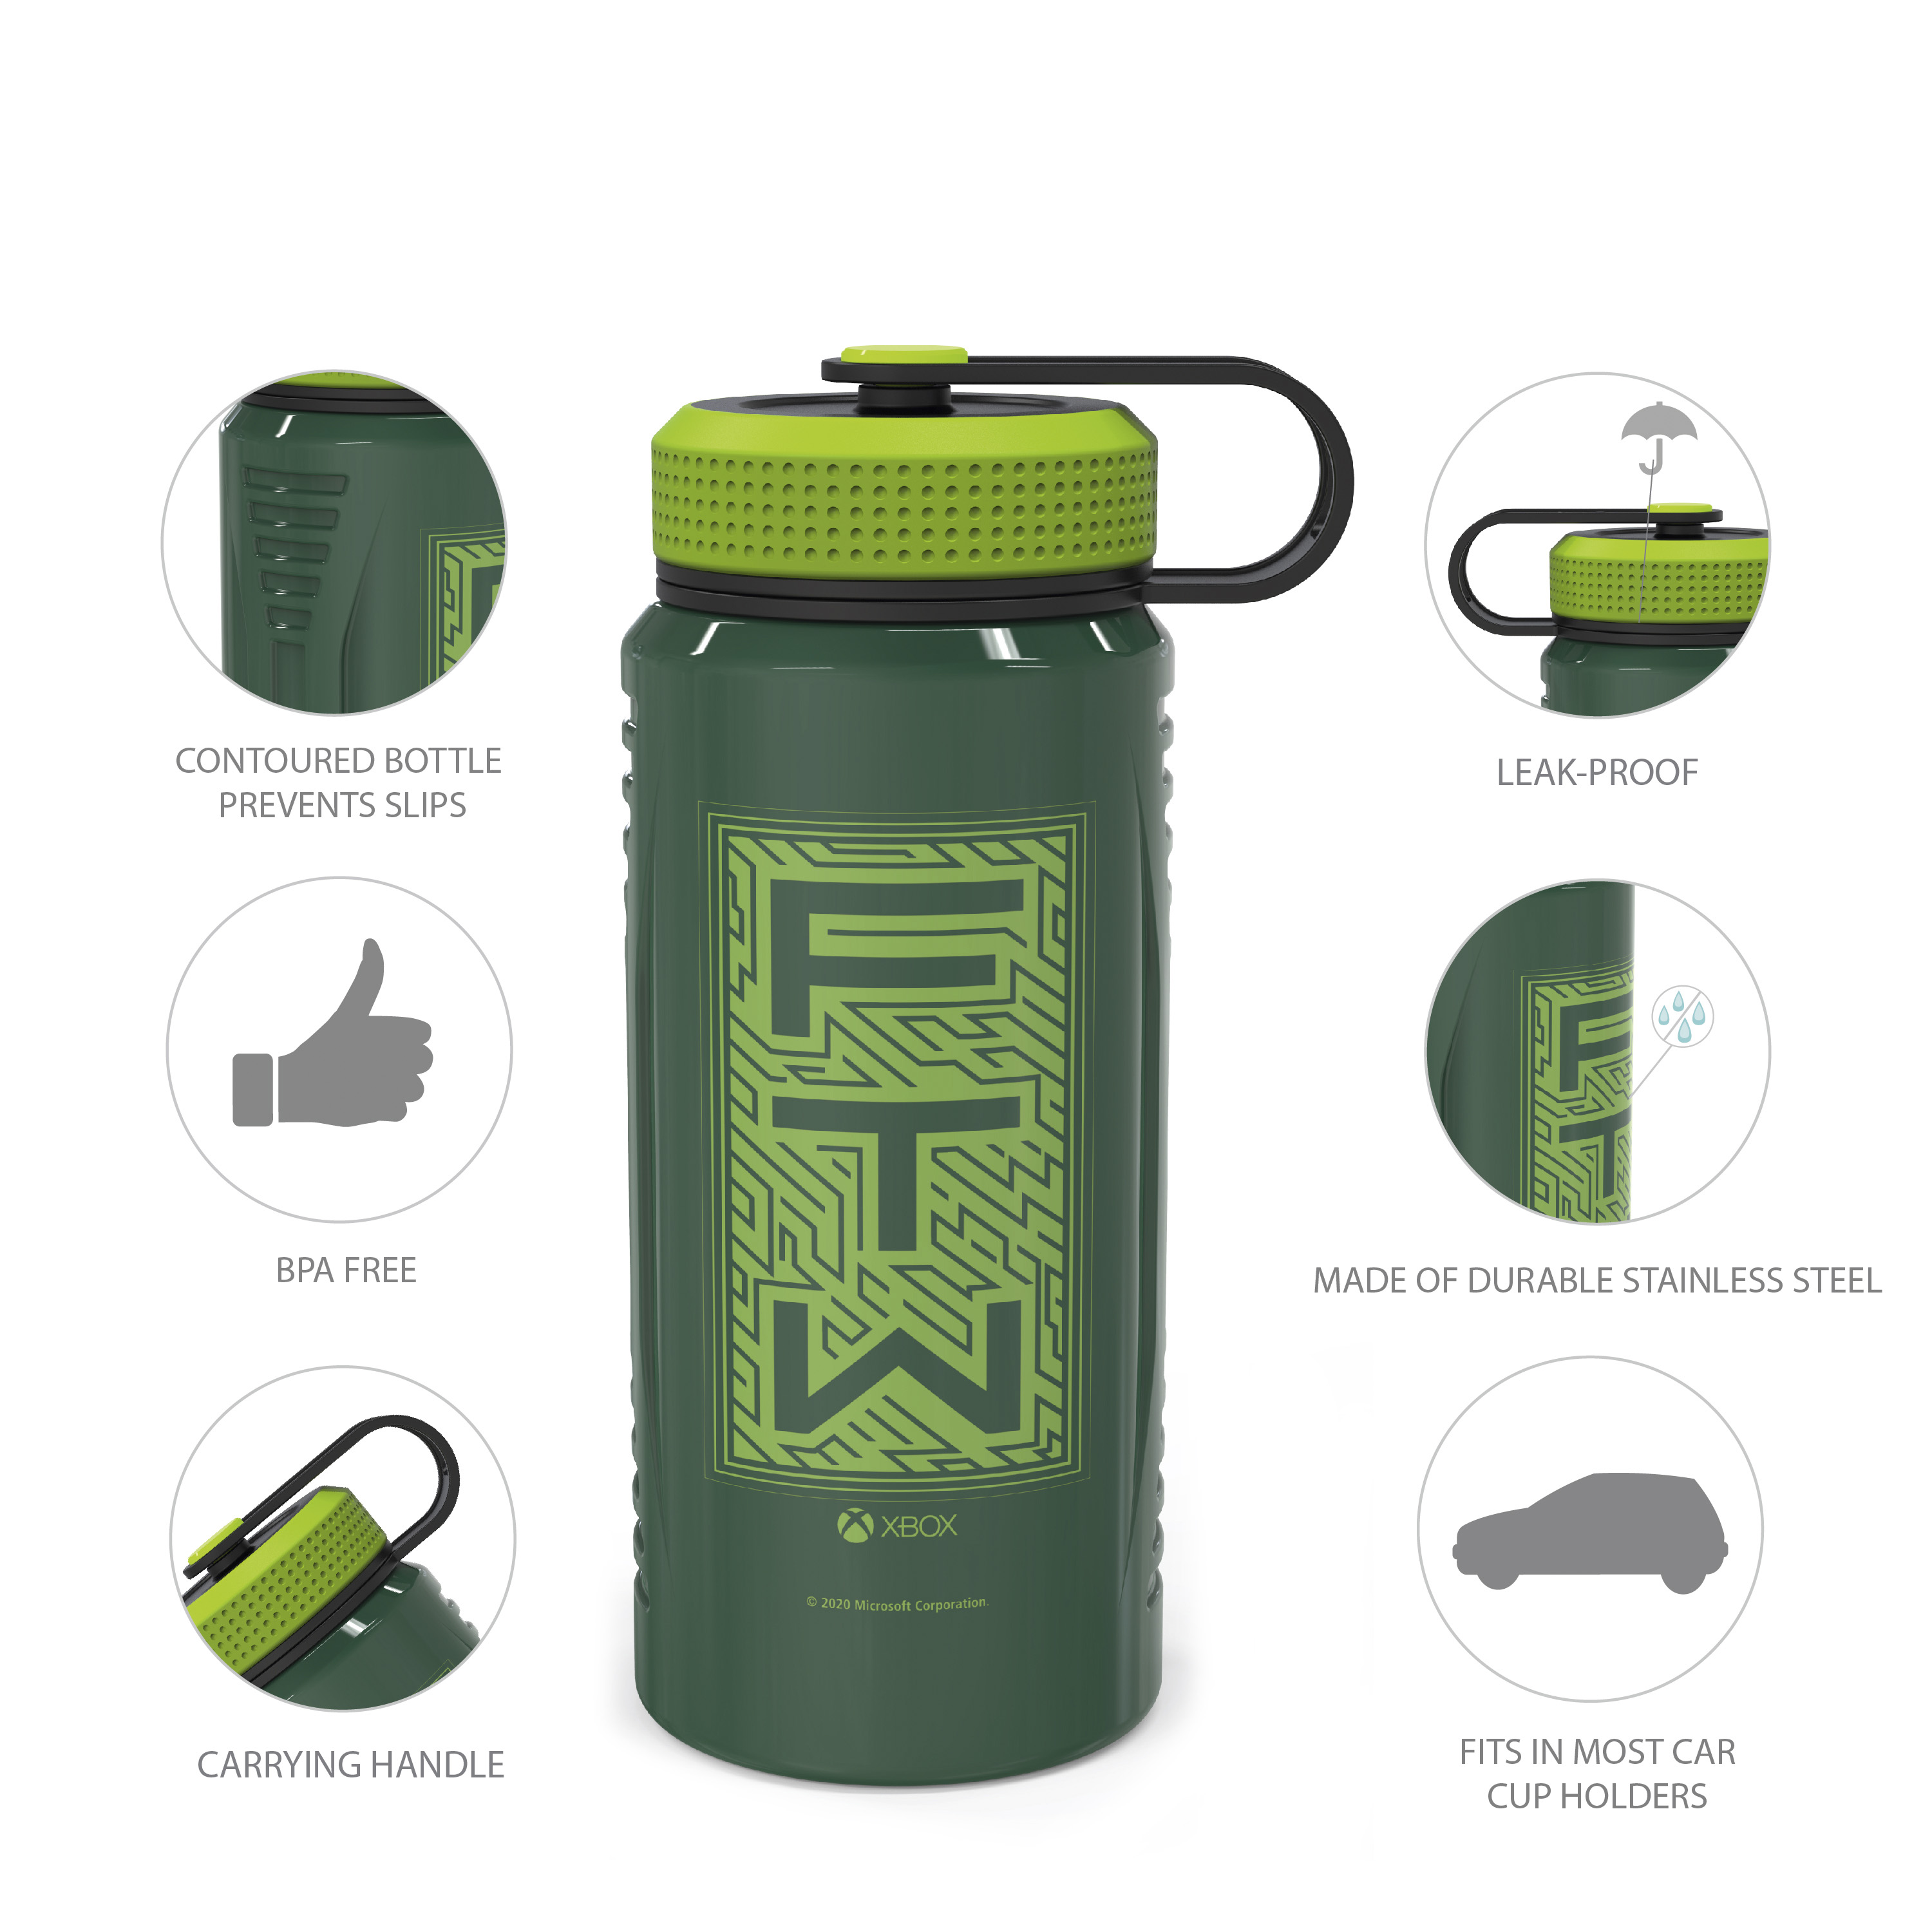 Xbox 24 ounce Stainless Steel Insulated Water Bottle, For the Win slideshow image 7